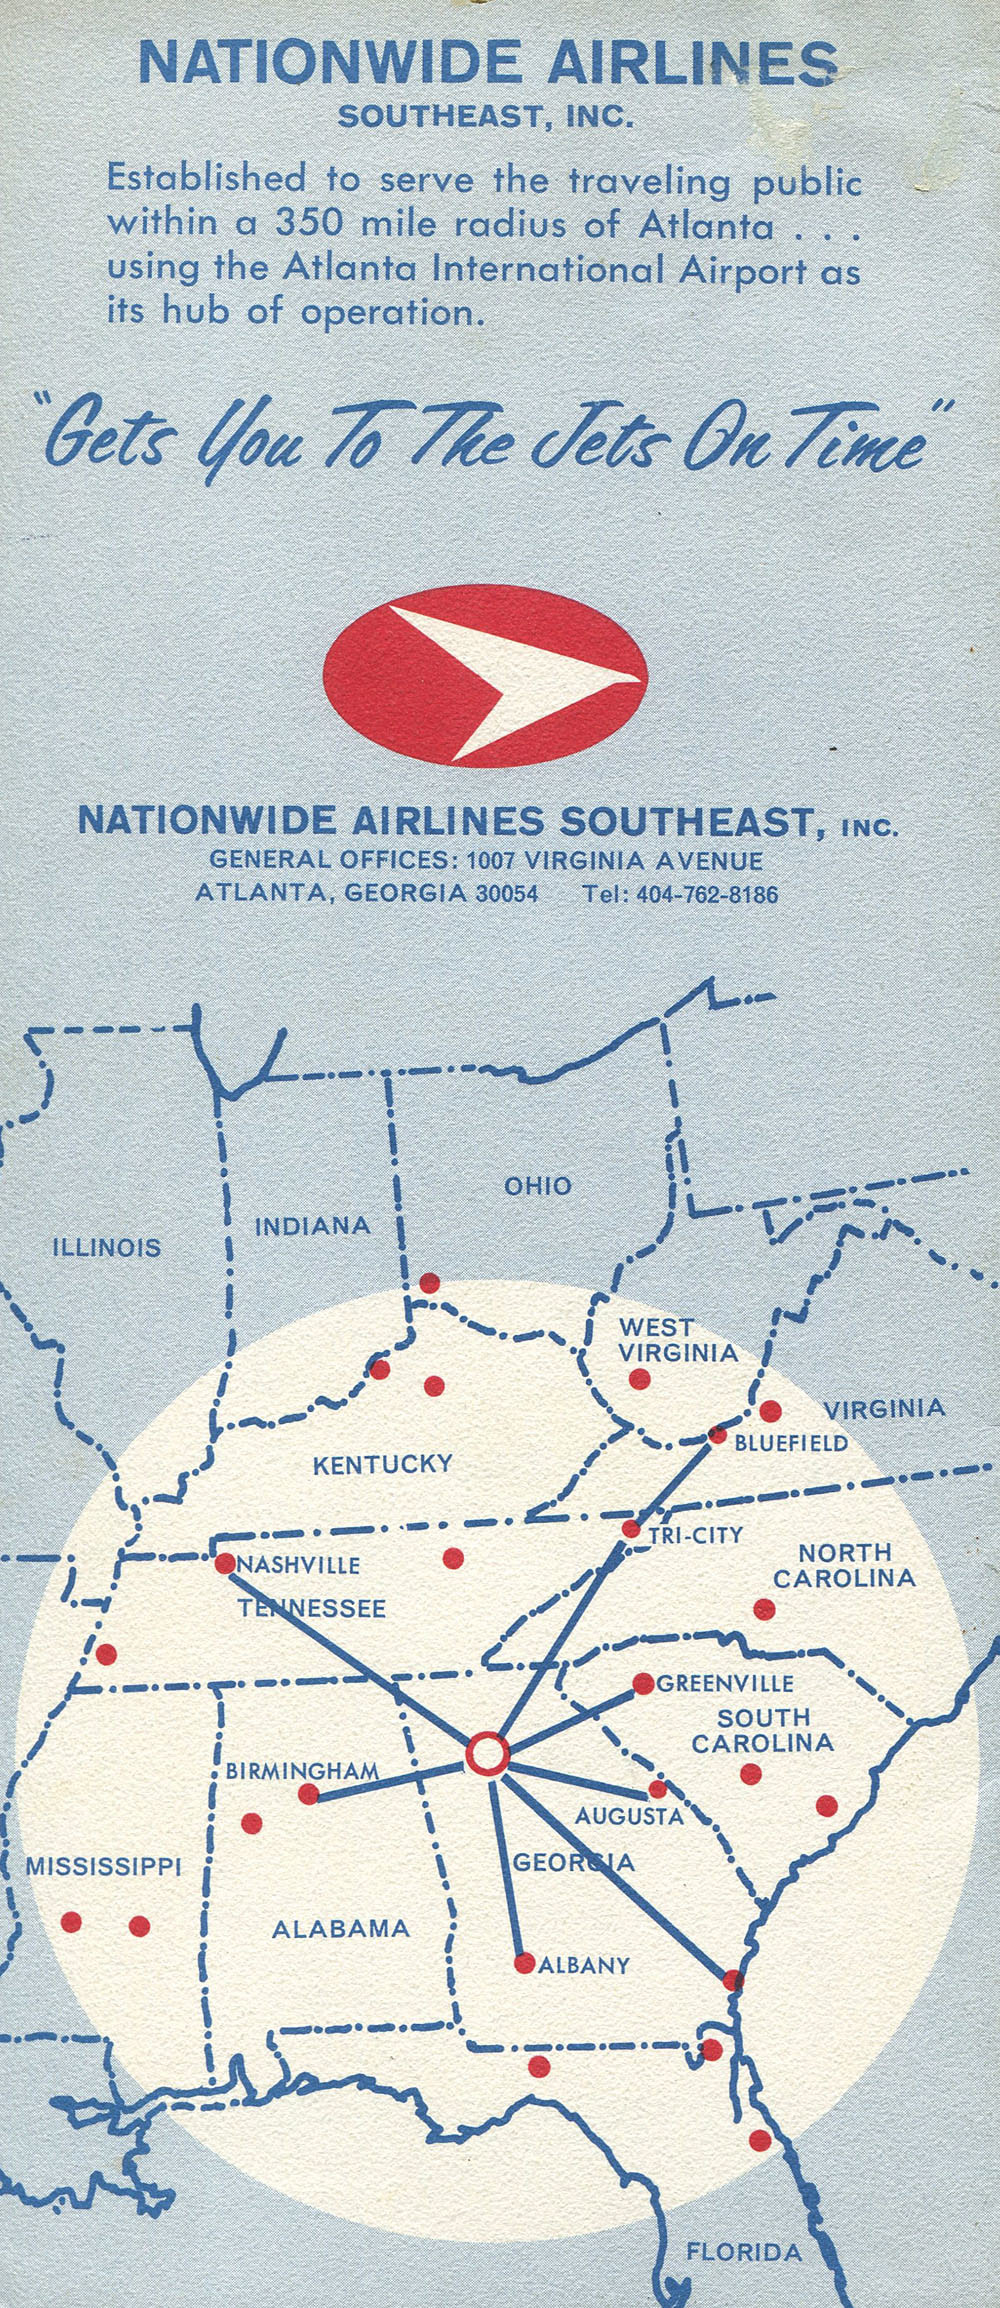 Nationwide Airlines Southeast route map